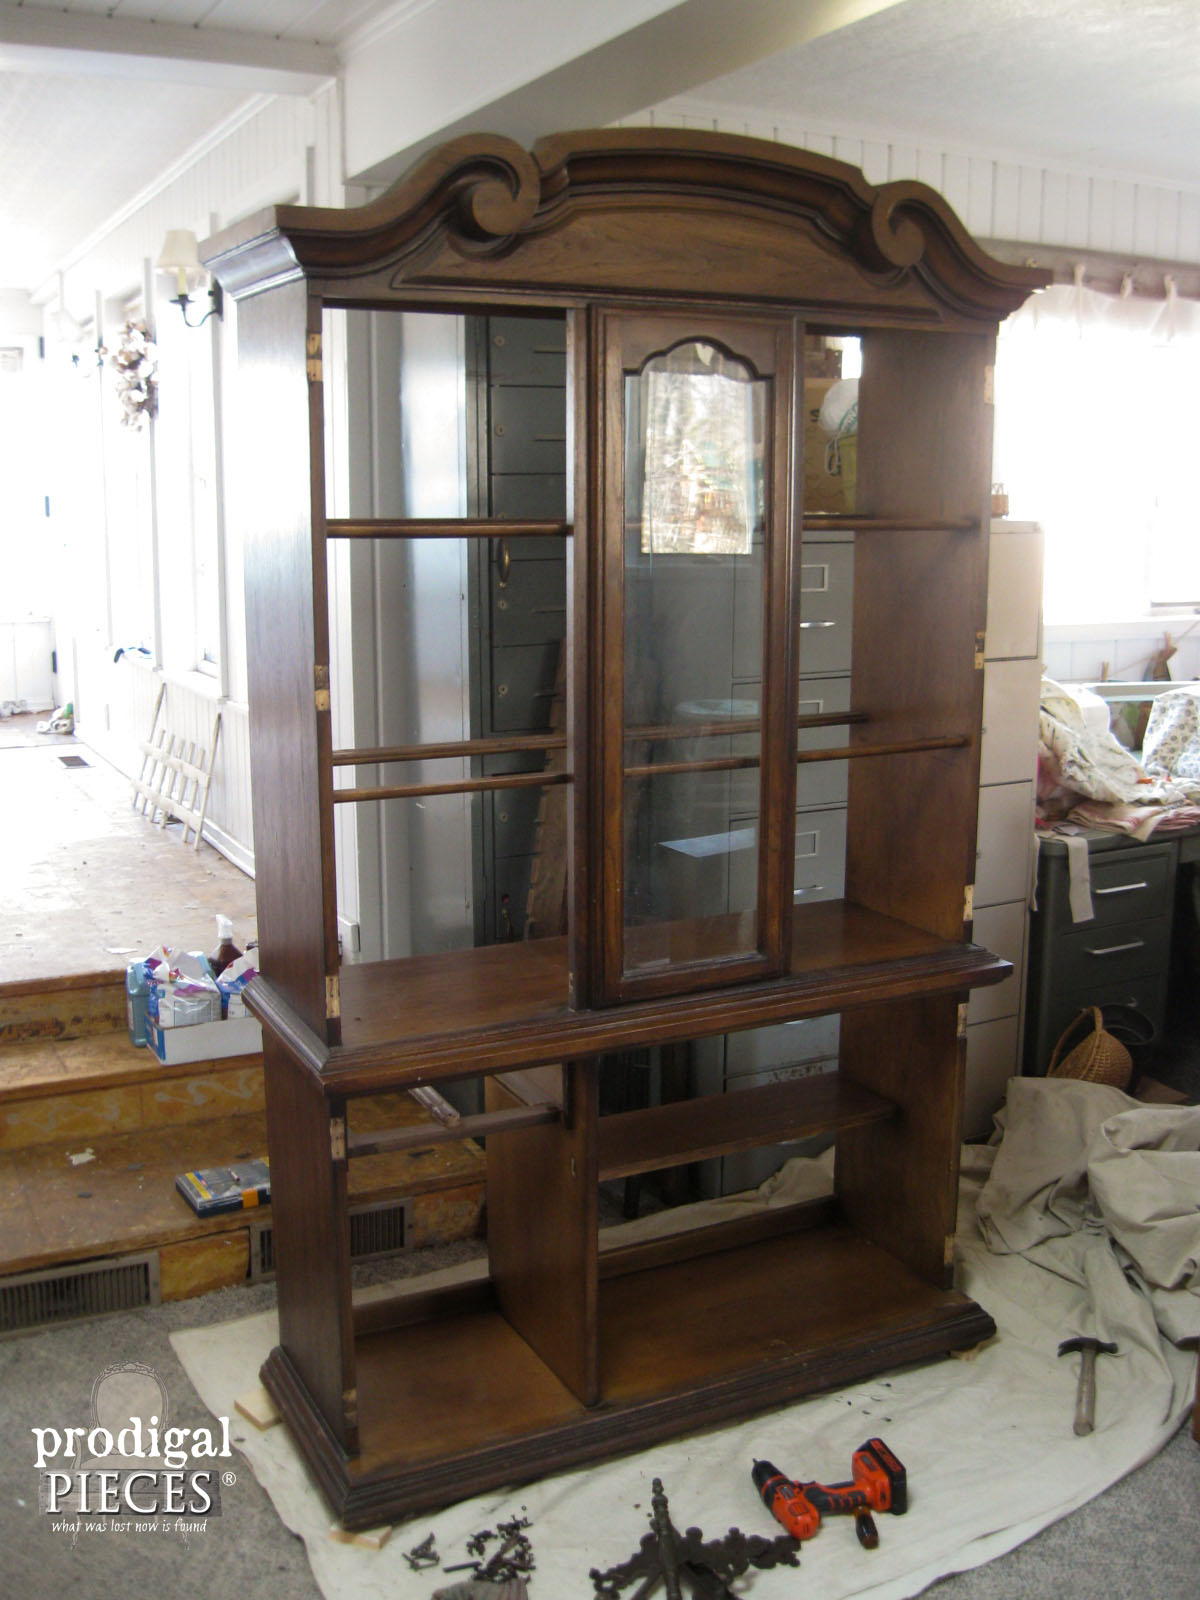 Prepping China Cabinet for Wallpaper Makeover by Prodigal Pieces | www.prodigalpieces.com